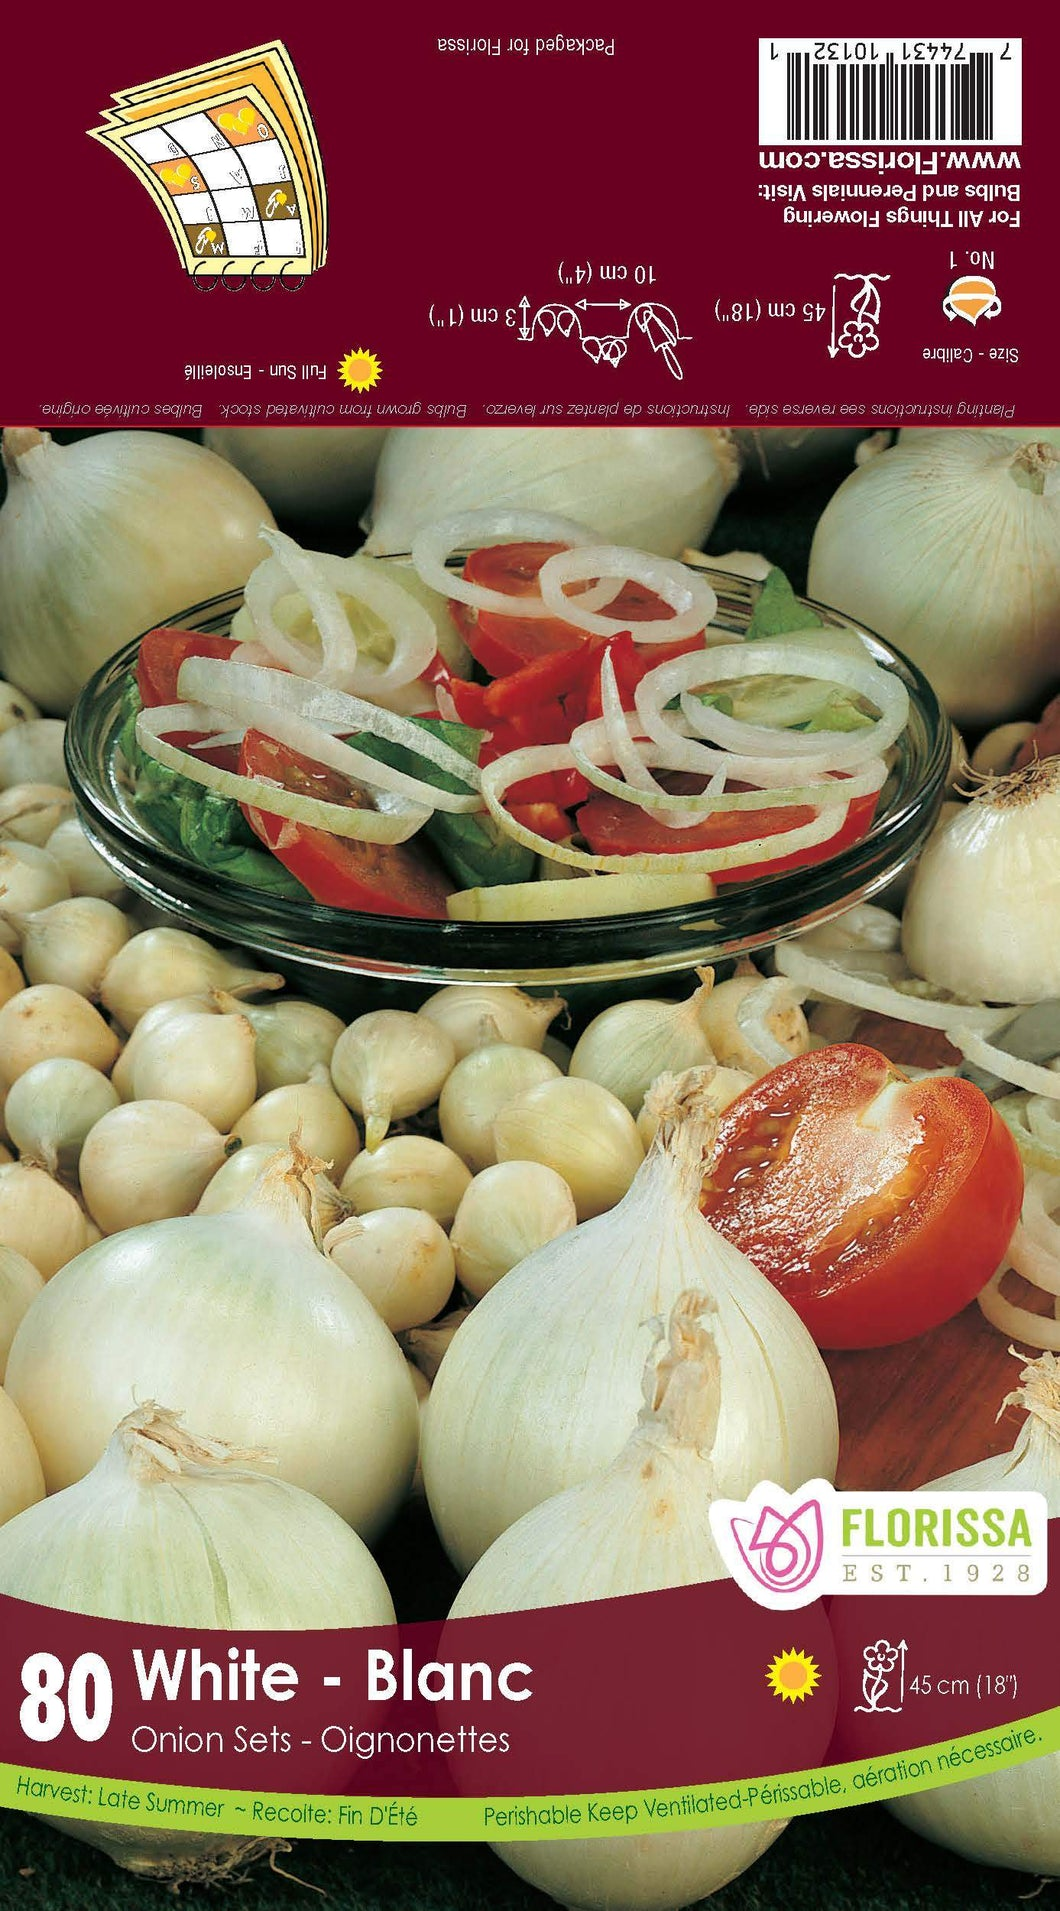 Onions - White sets 80blb/pkg SOLD OUT FOR THE SEASON